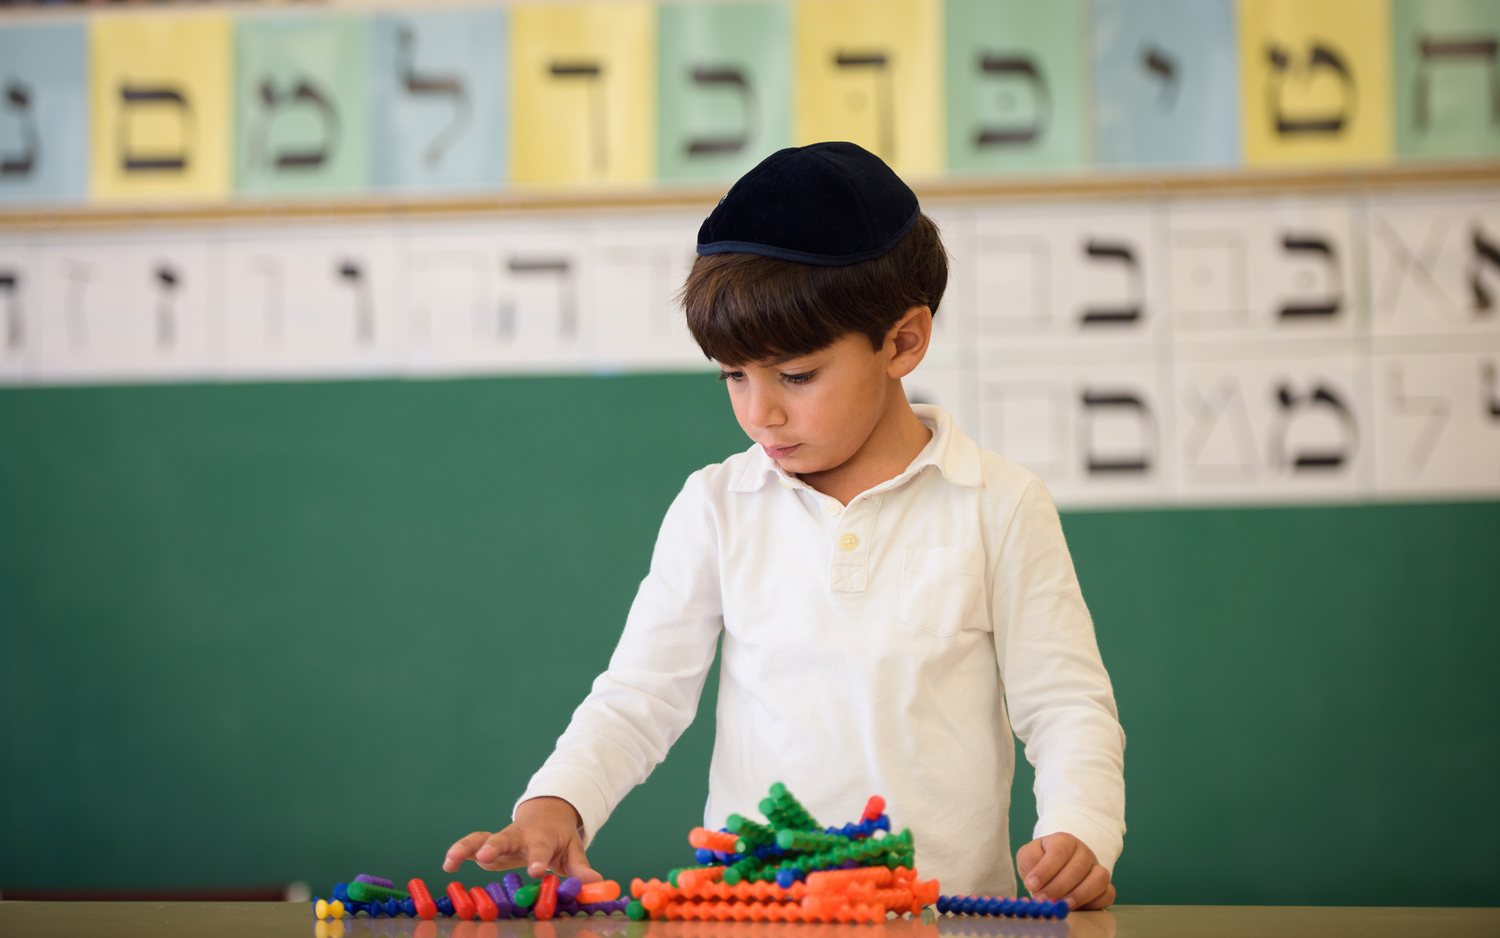 Boy from the Preschool Division playing in a classroom